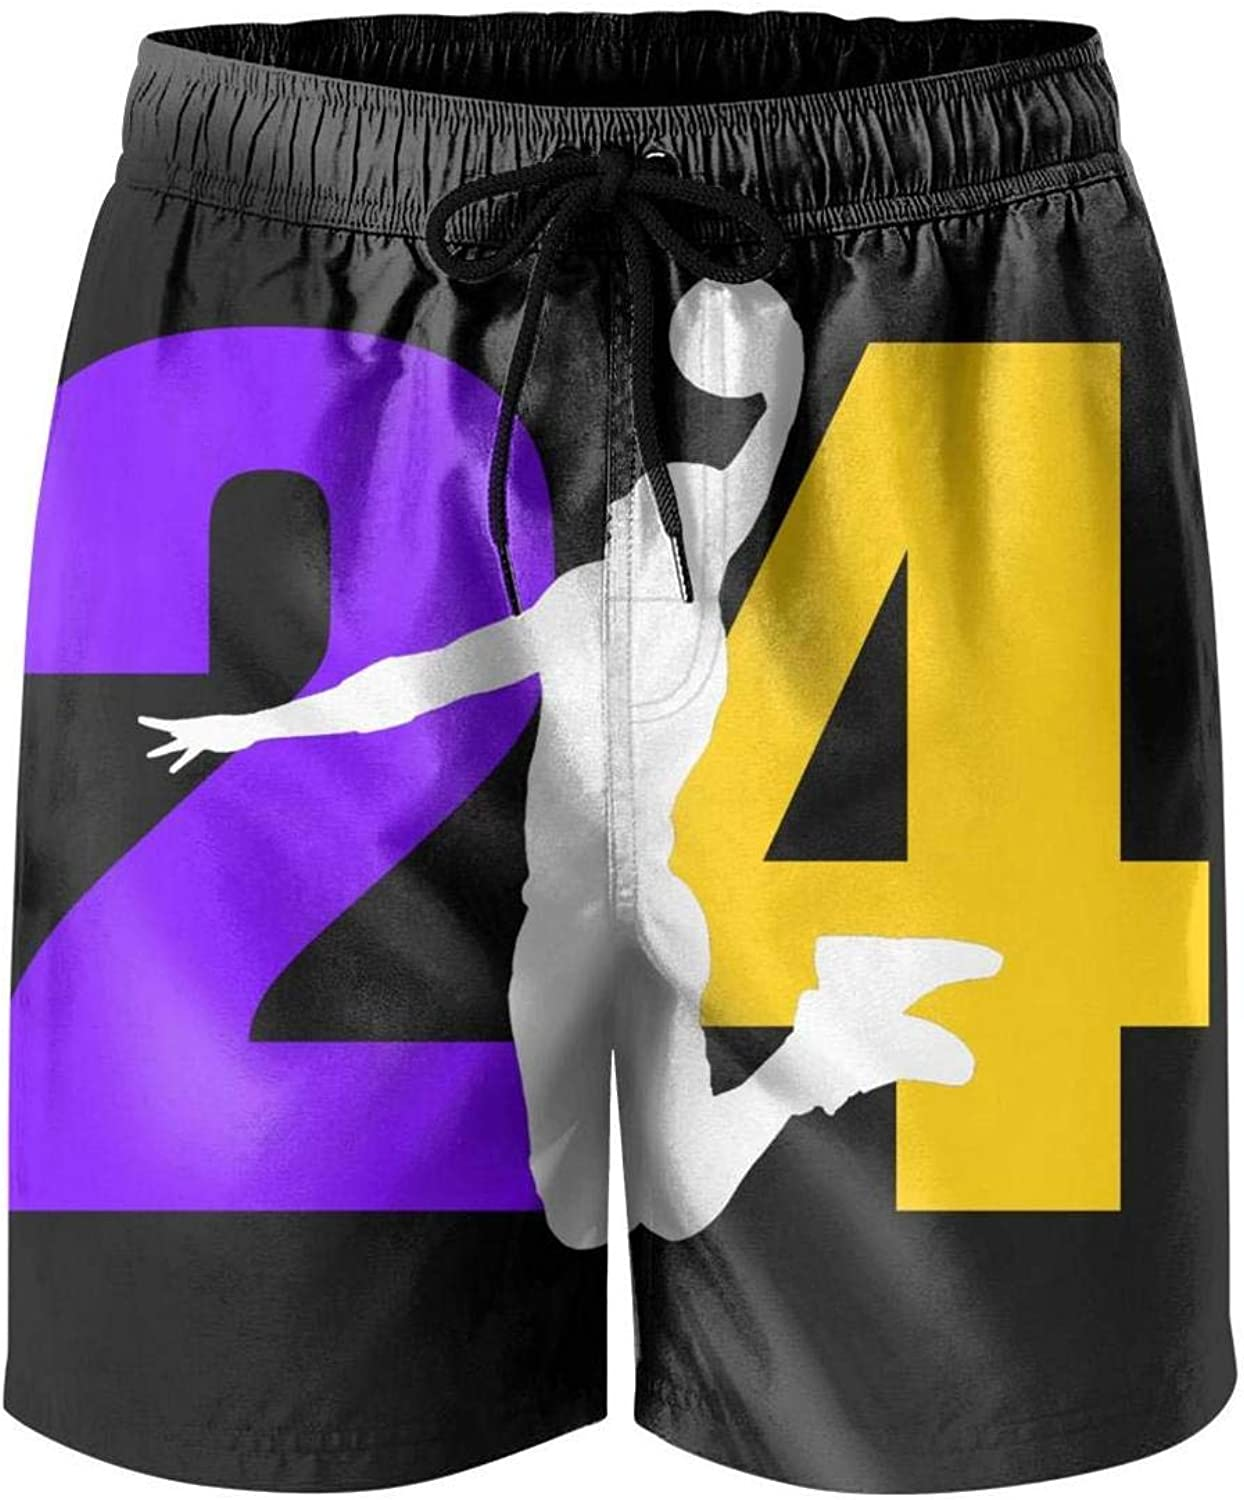 FPFLY Men's Board Shorts MVP-24-Basketball-Player- Quick Dry Bathing Suits Mesh Lining Beach Board Shorts